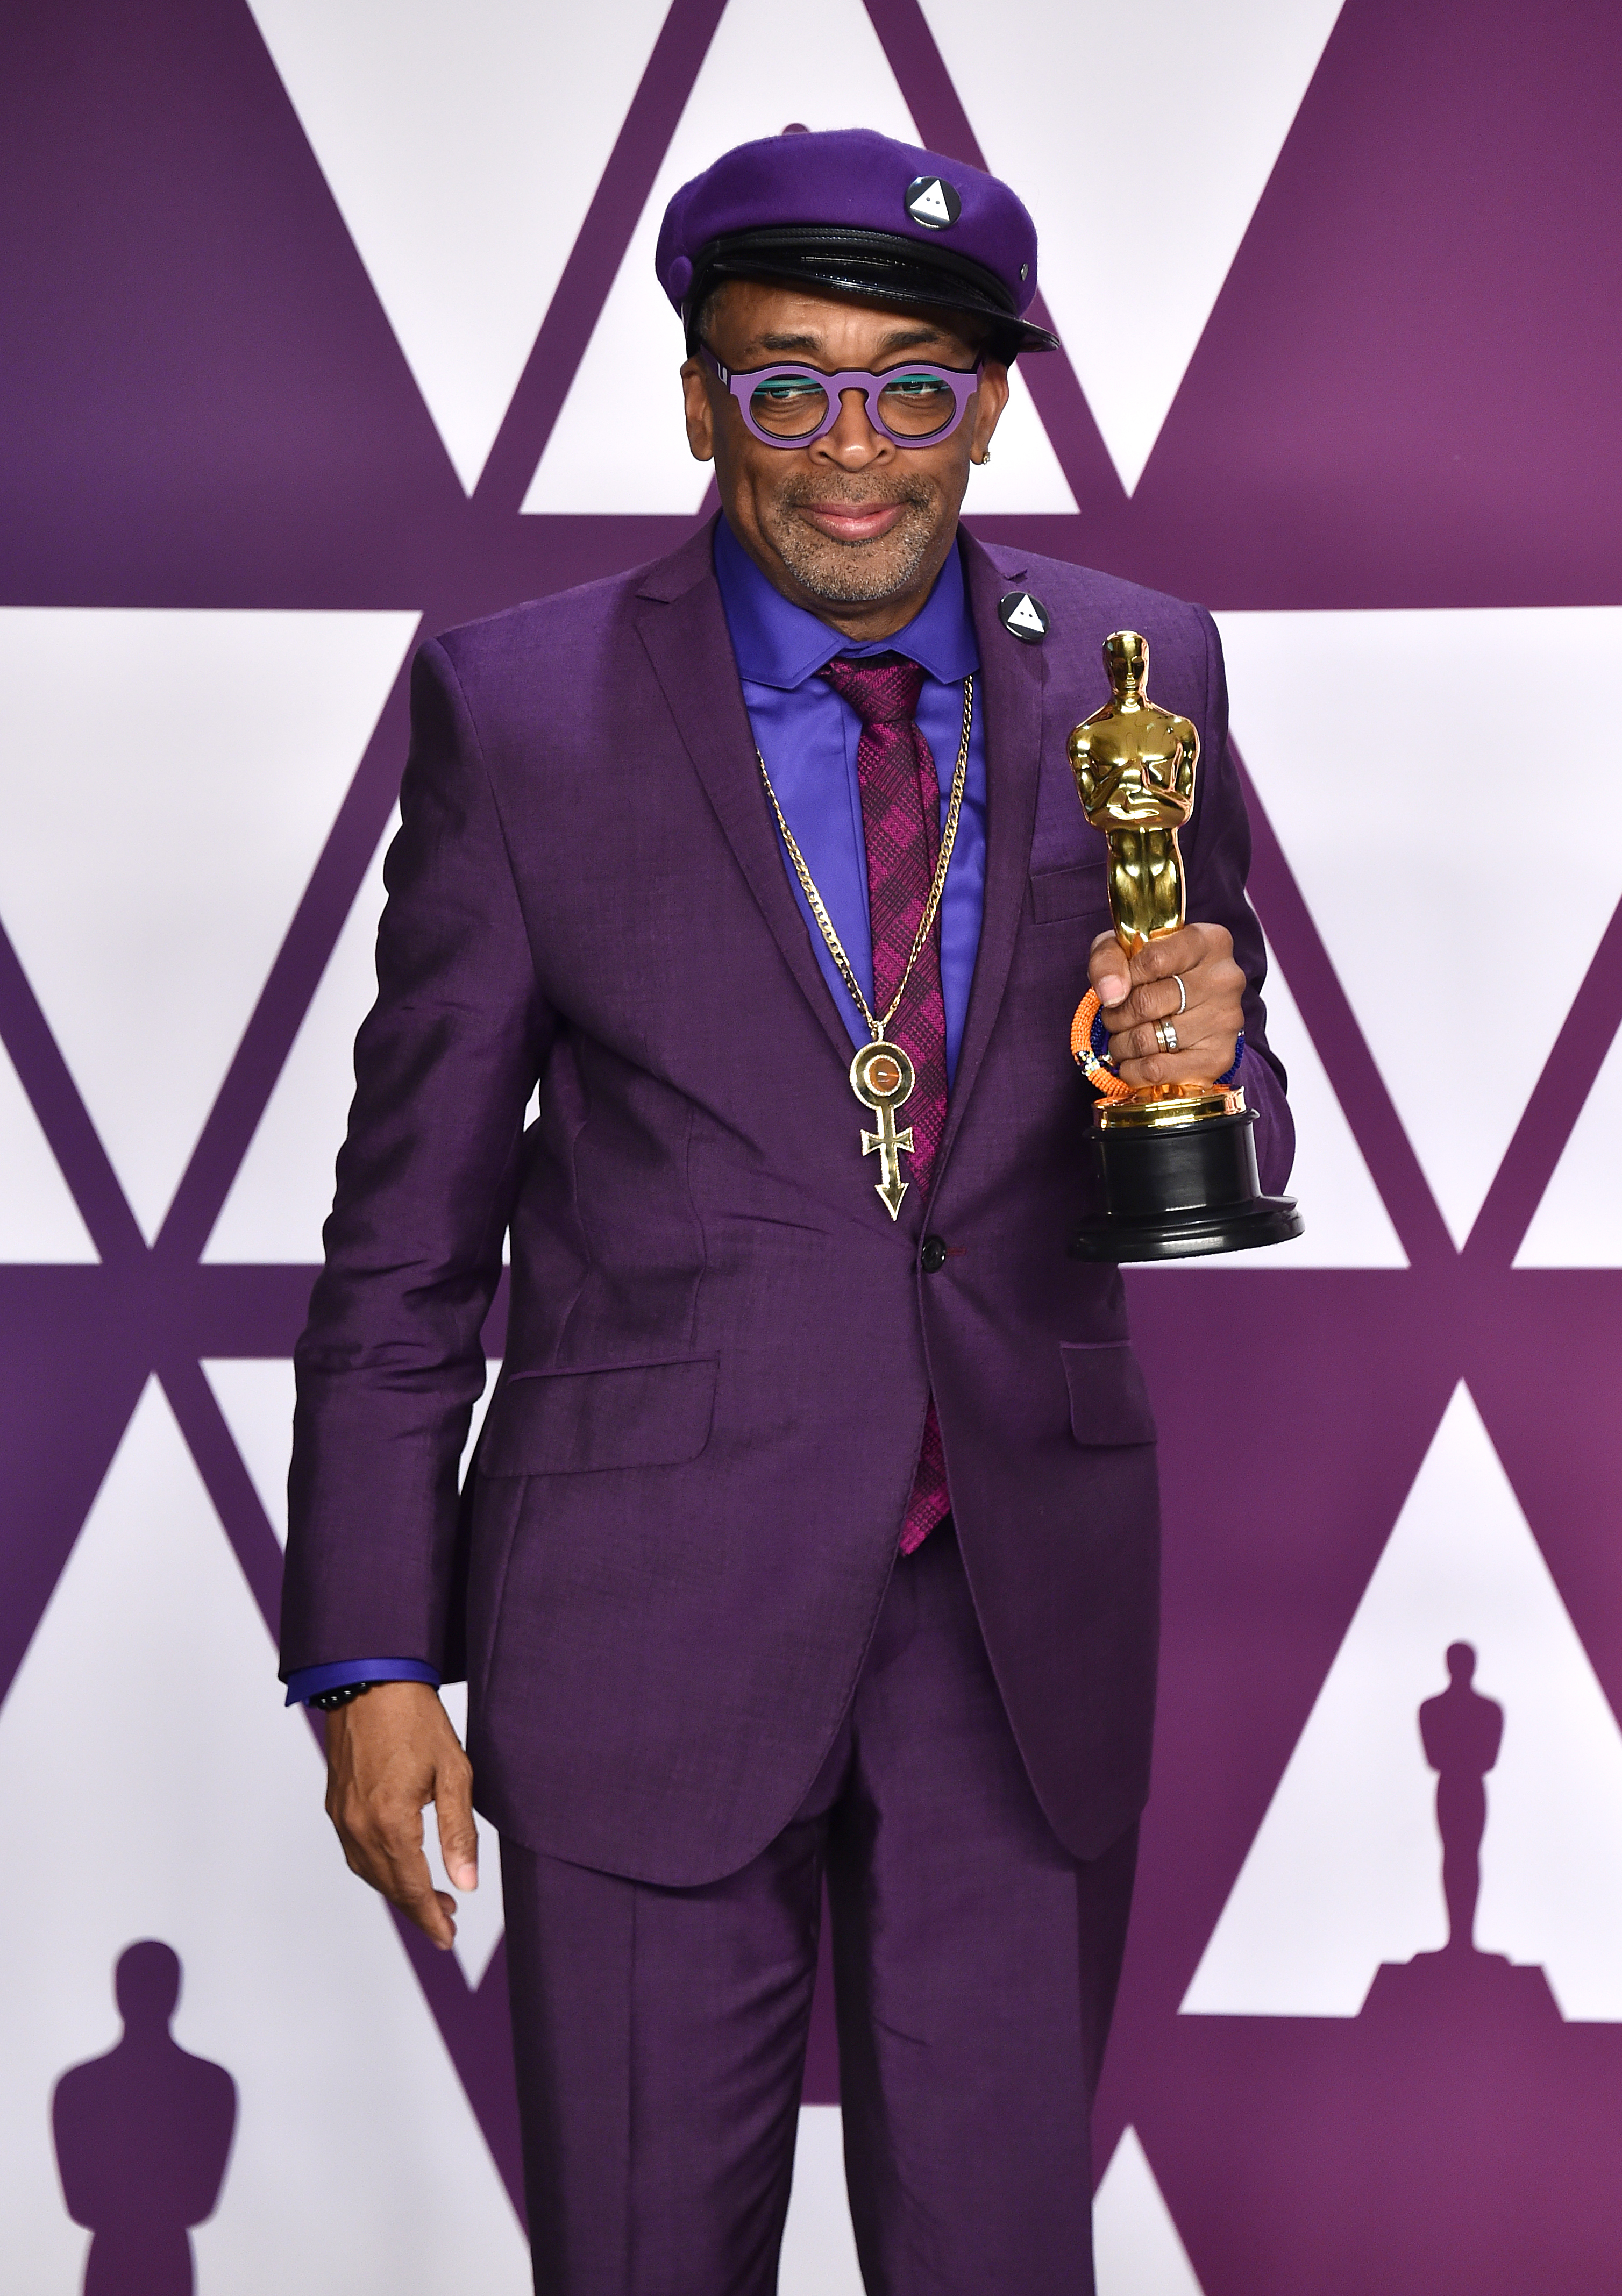 Spike Lee at last year's Oscars